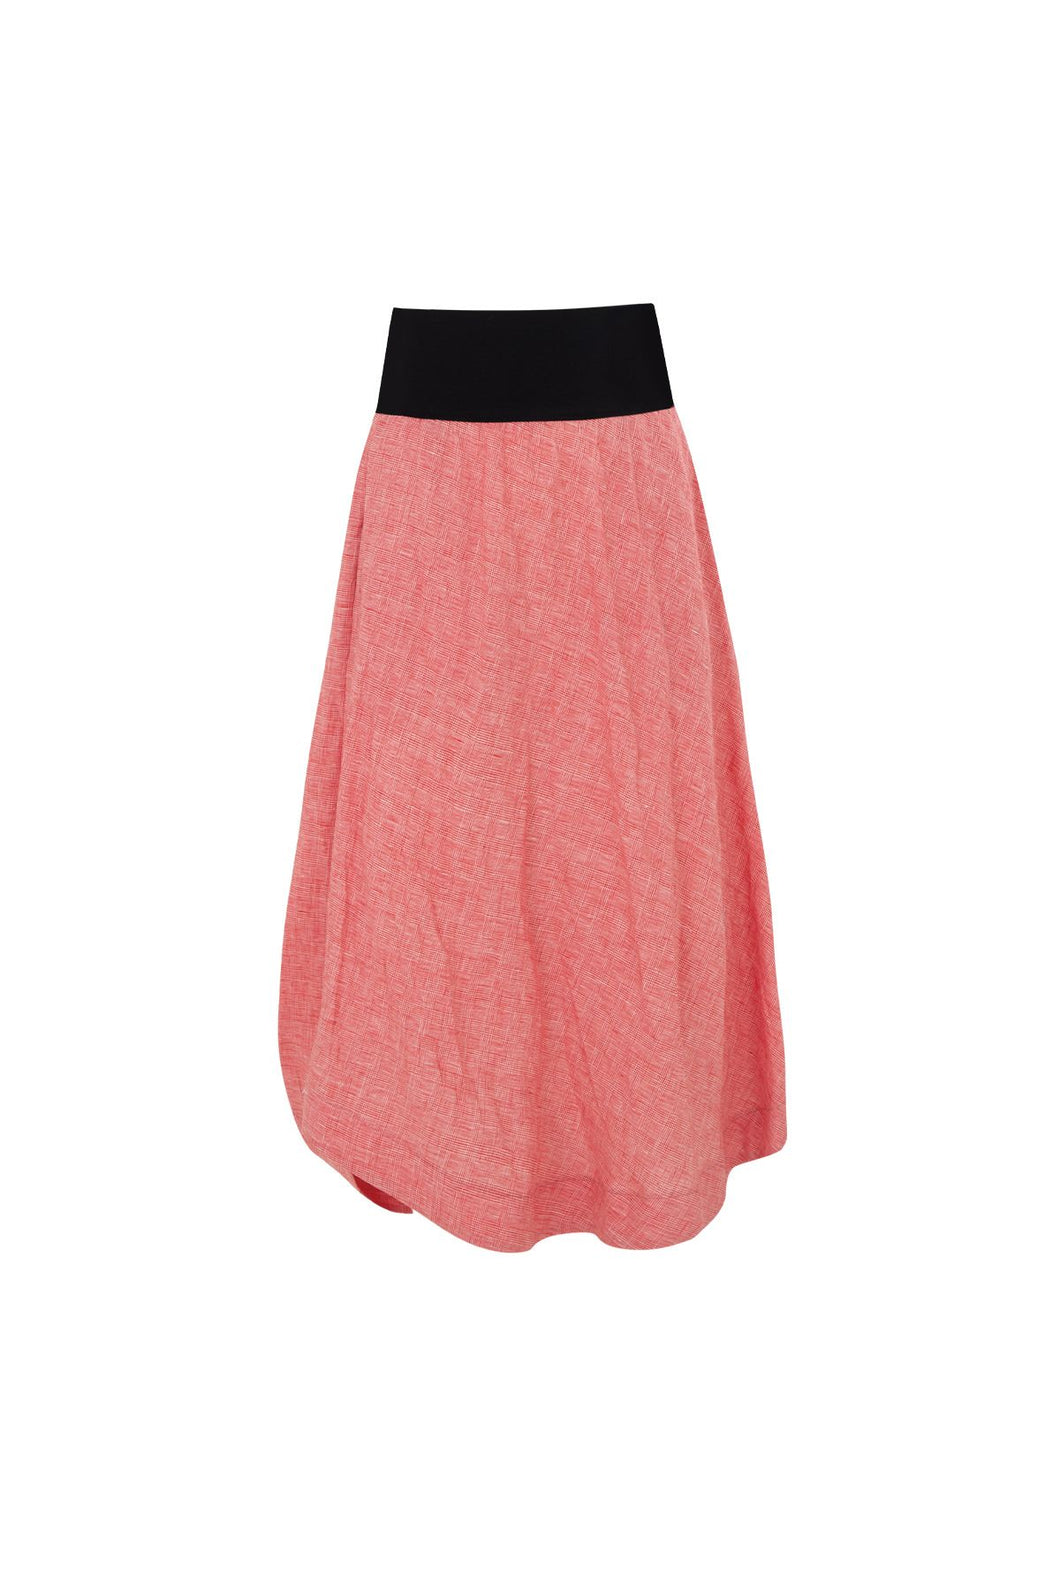 CURATE by Trelise Cooper - Tuck Star Skirt - RED